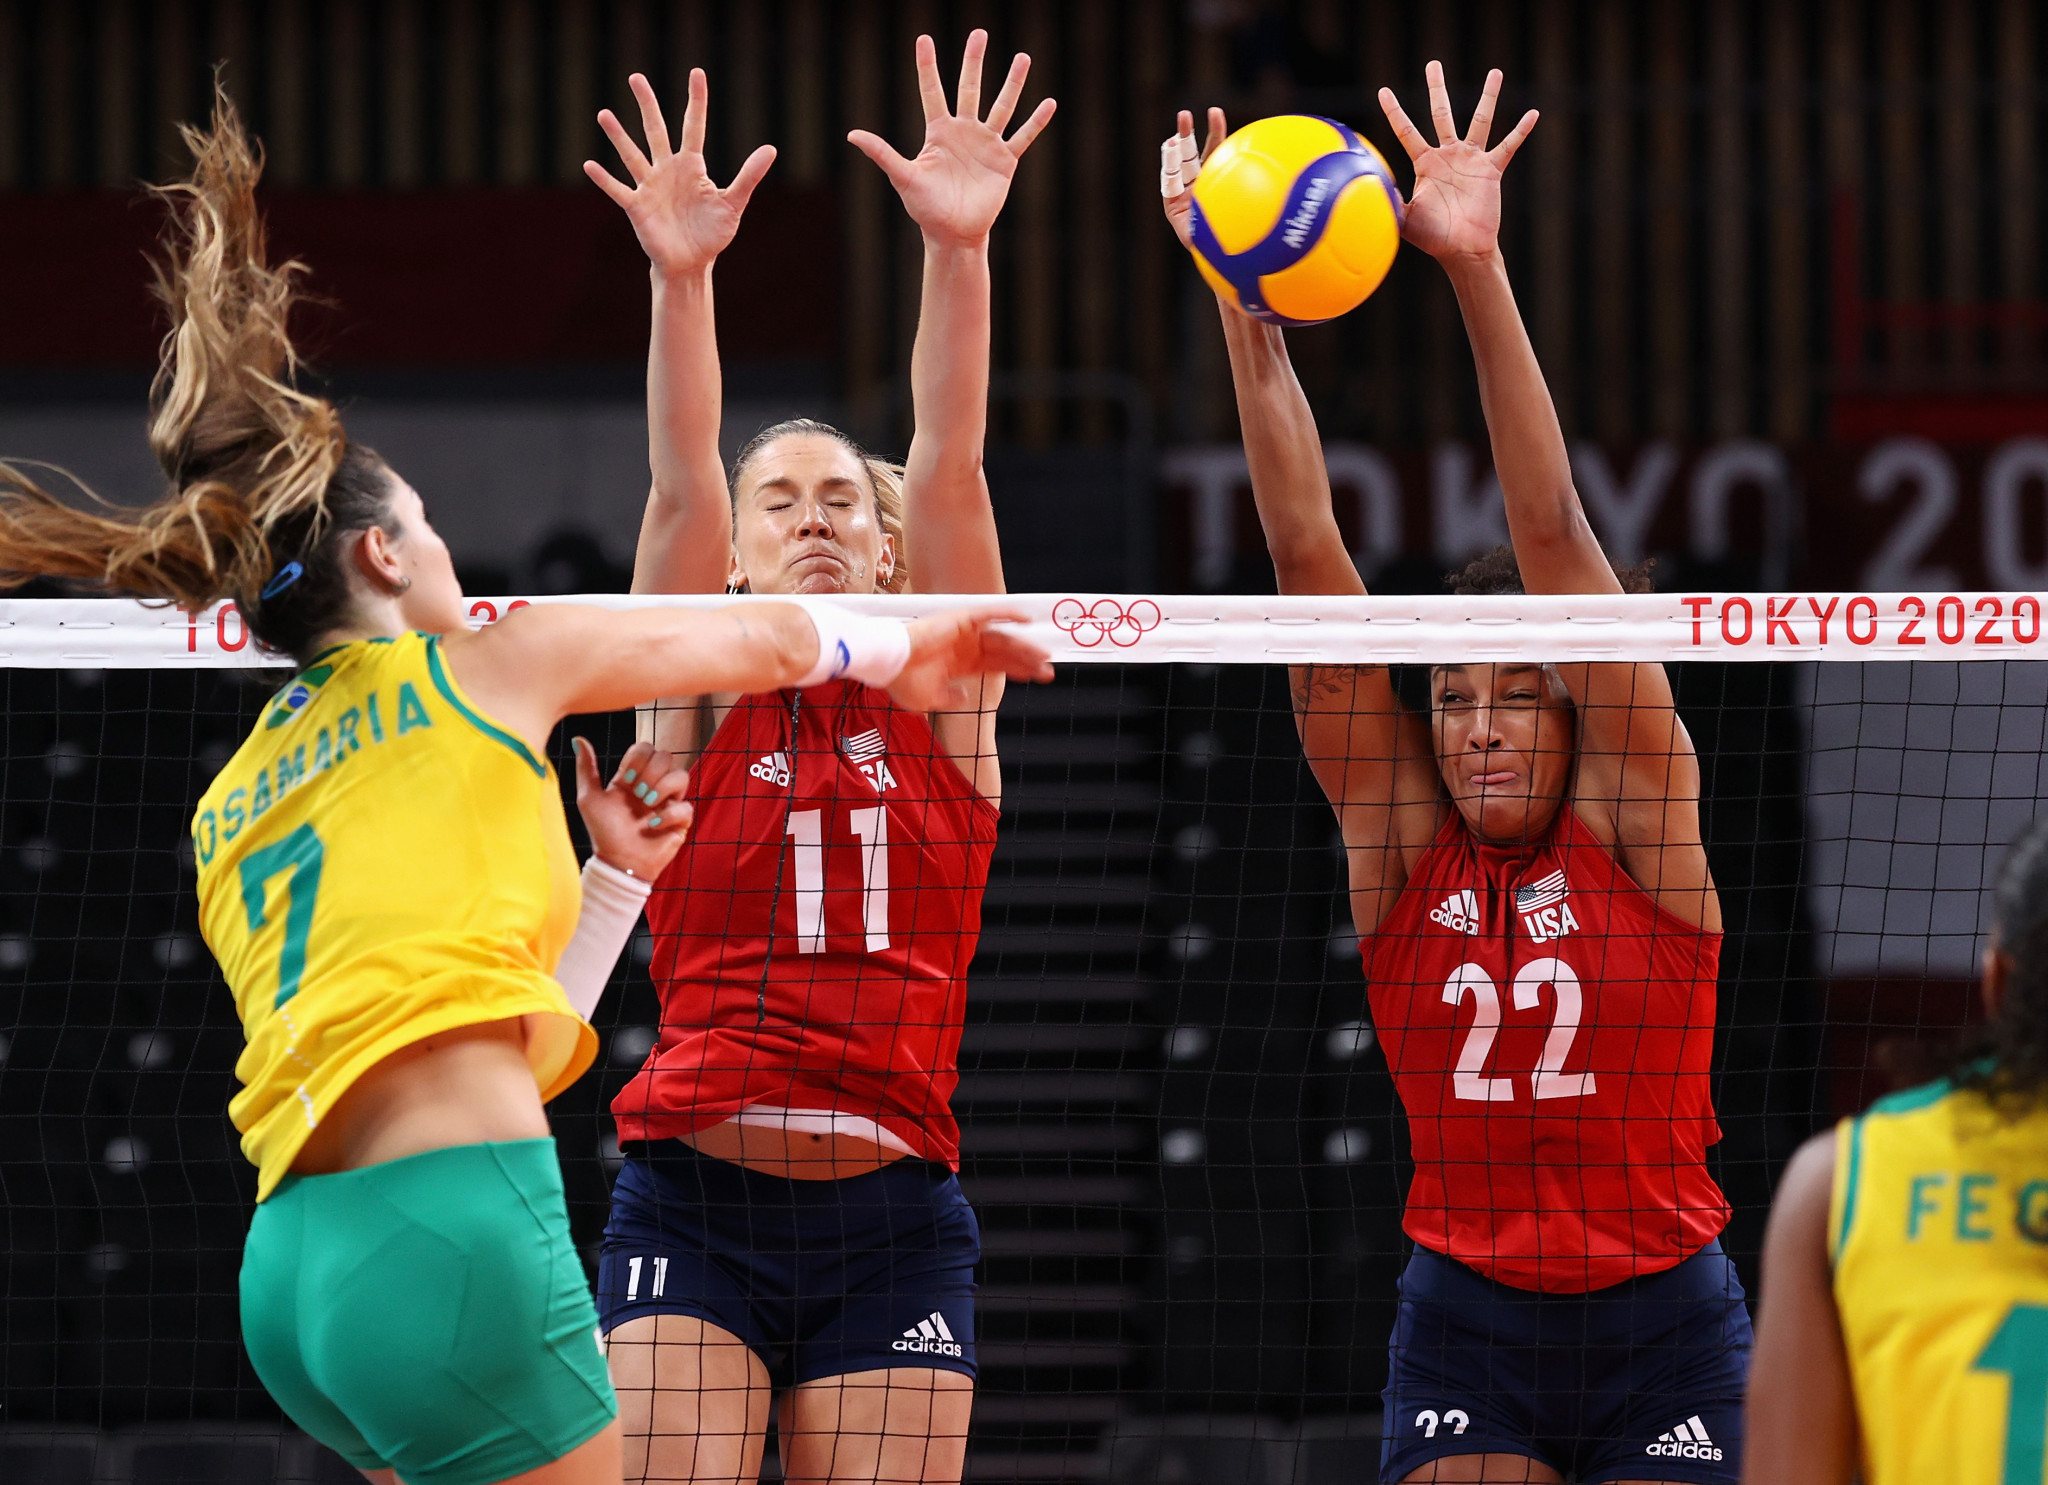 The United States, playing in red, won the Olympic women's volleyball title for the first time after defeating Brazil ©Getty Images